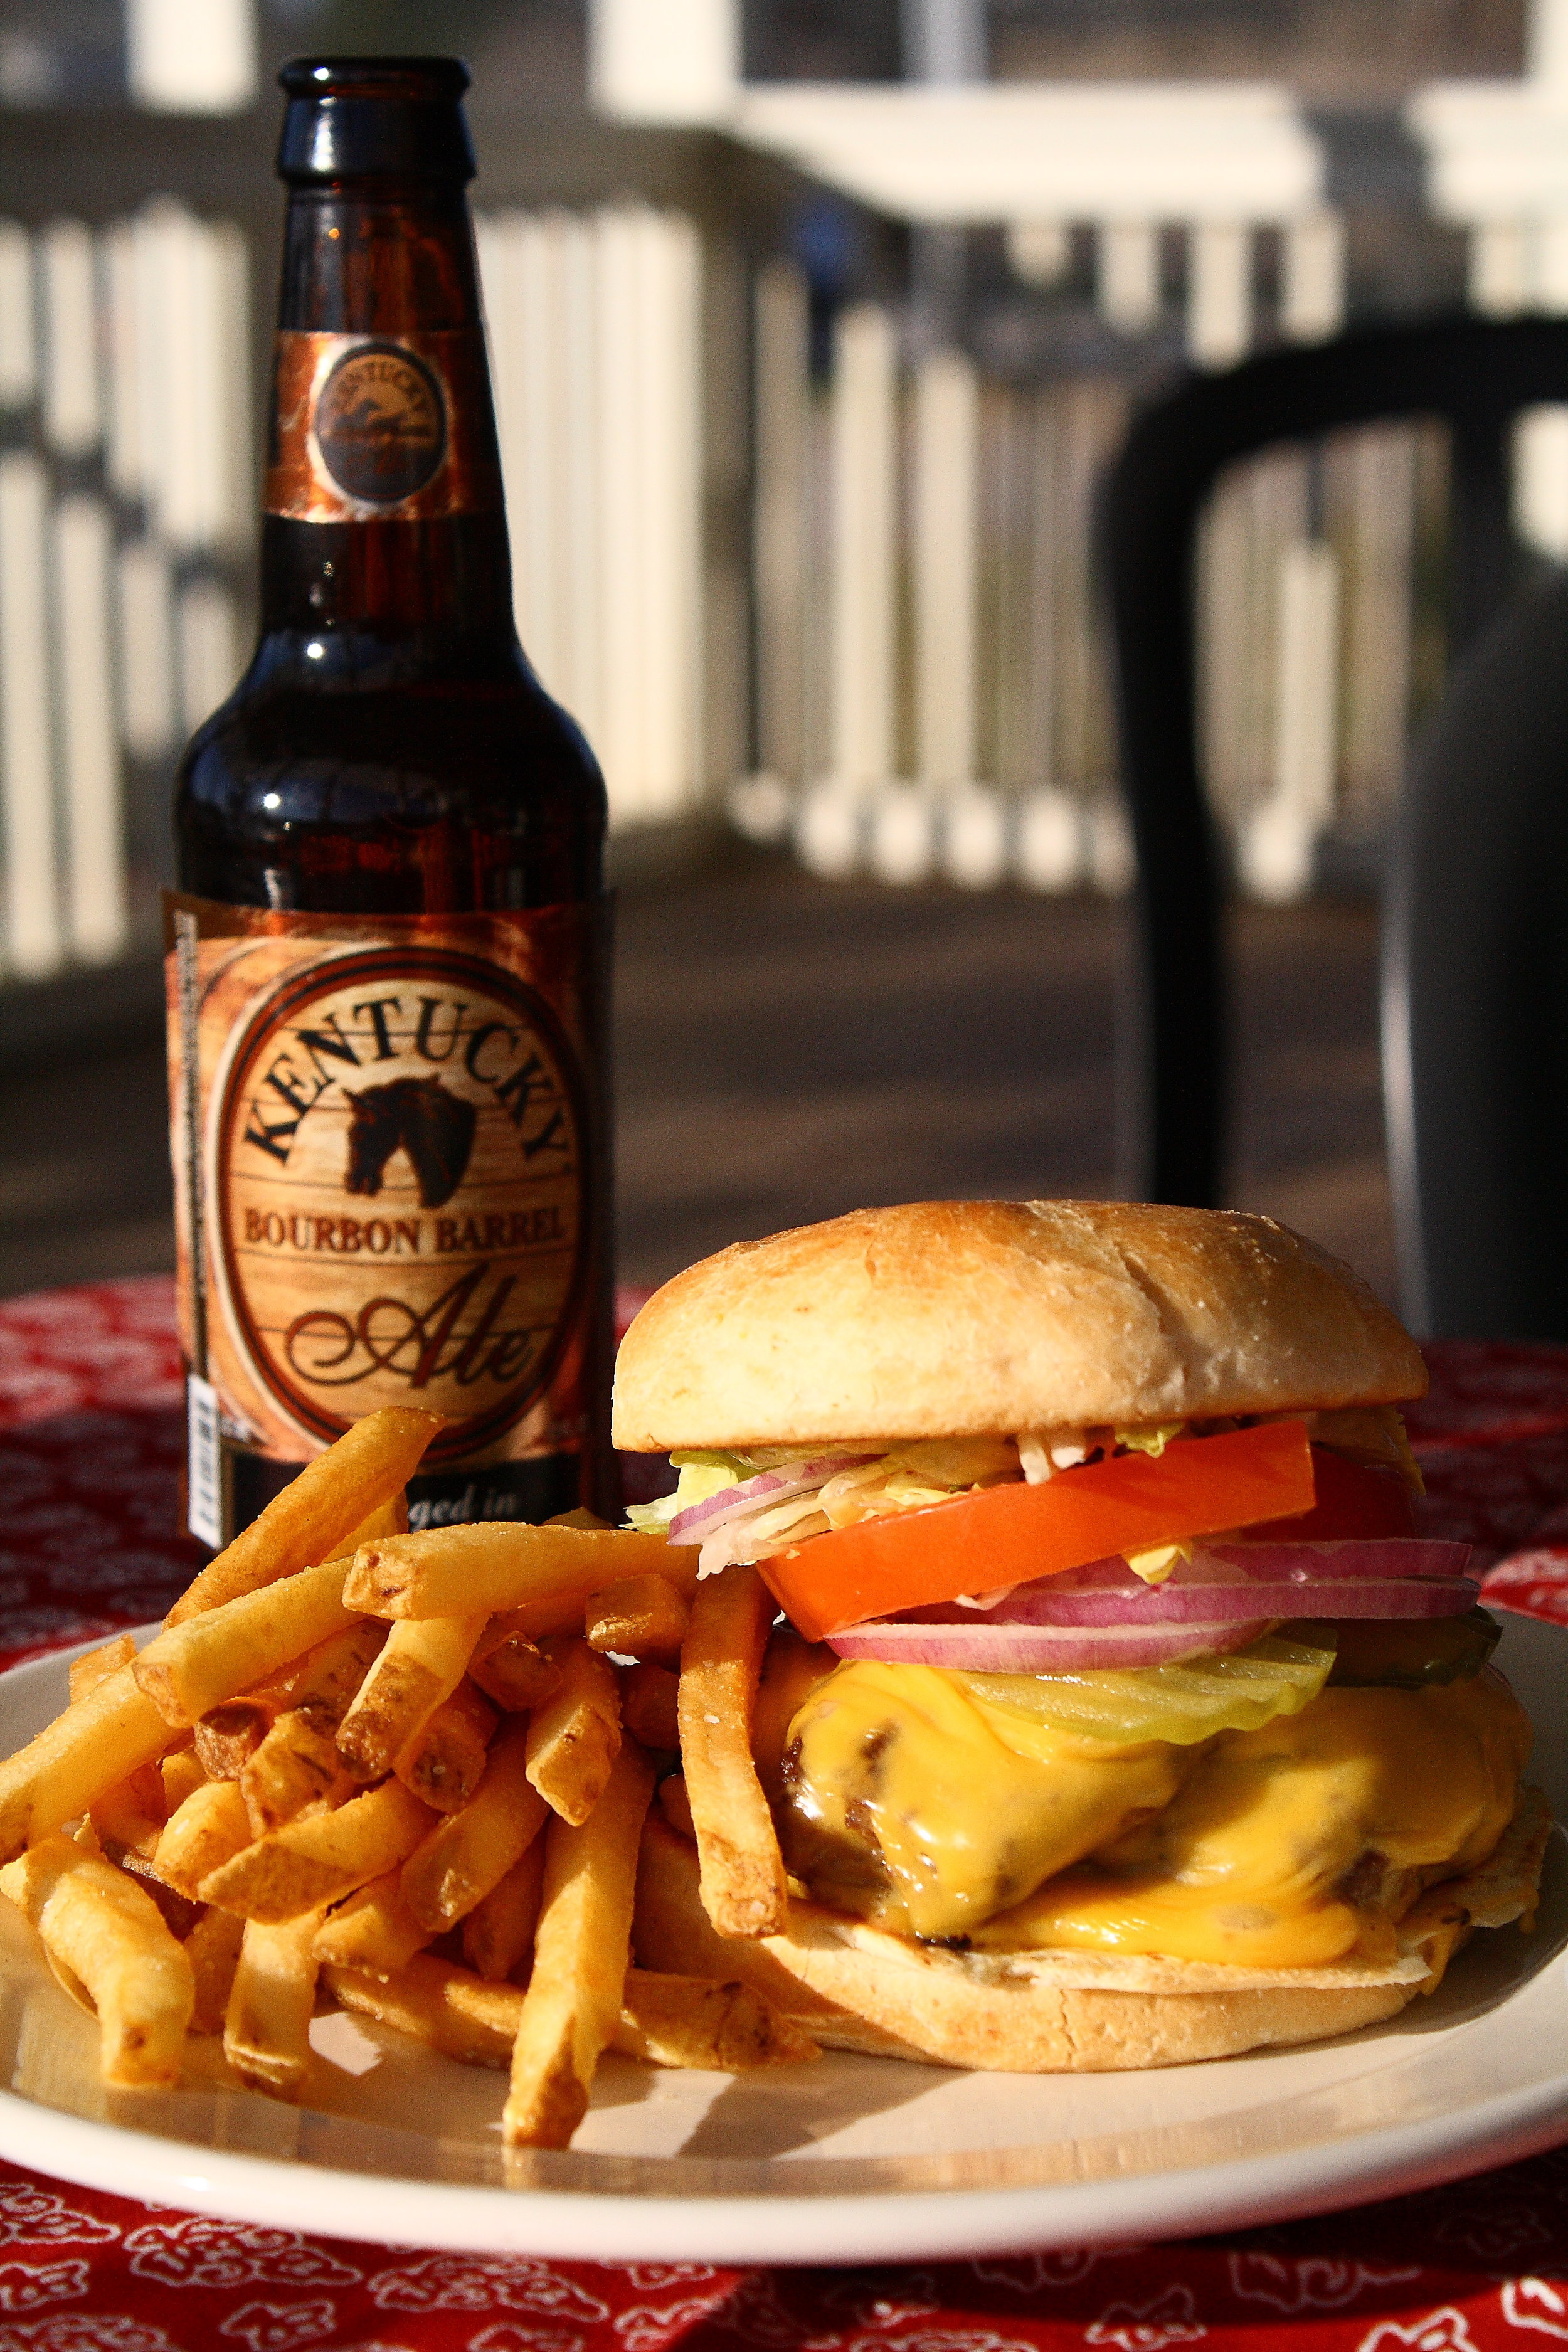 cheeseburger kentucky ale.jpg